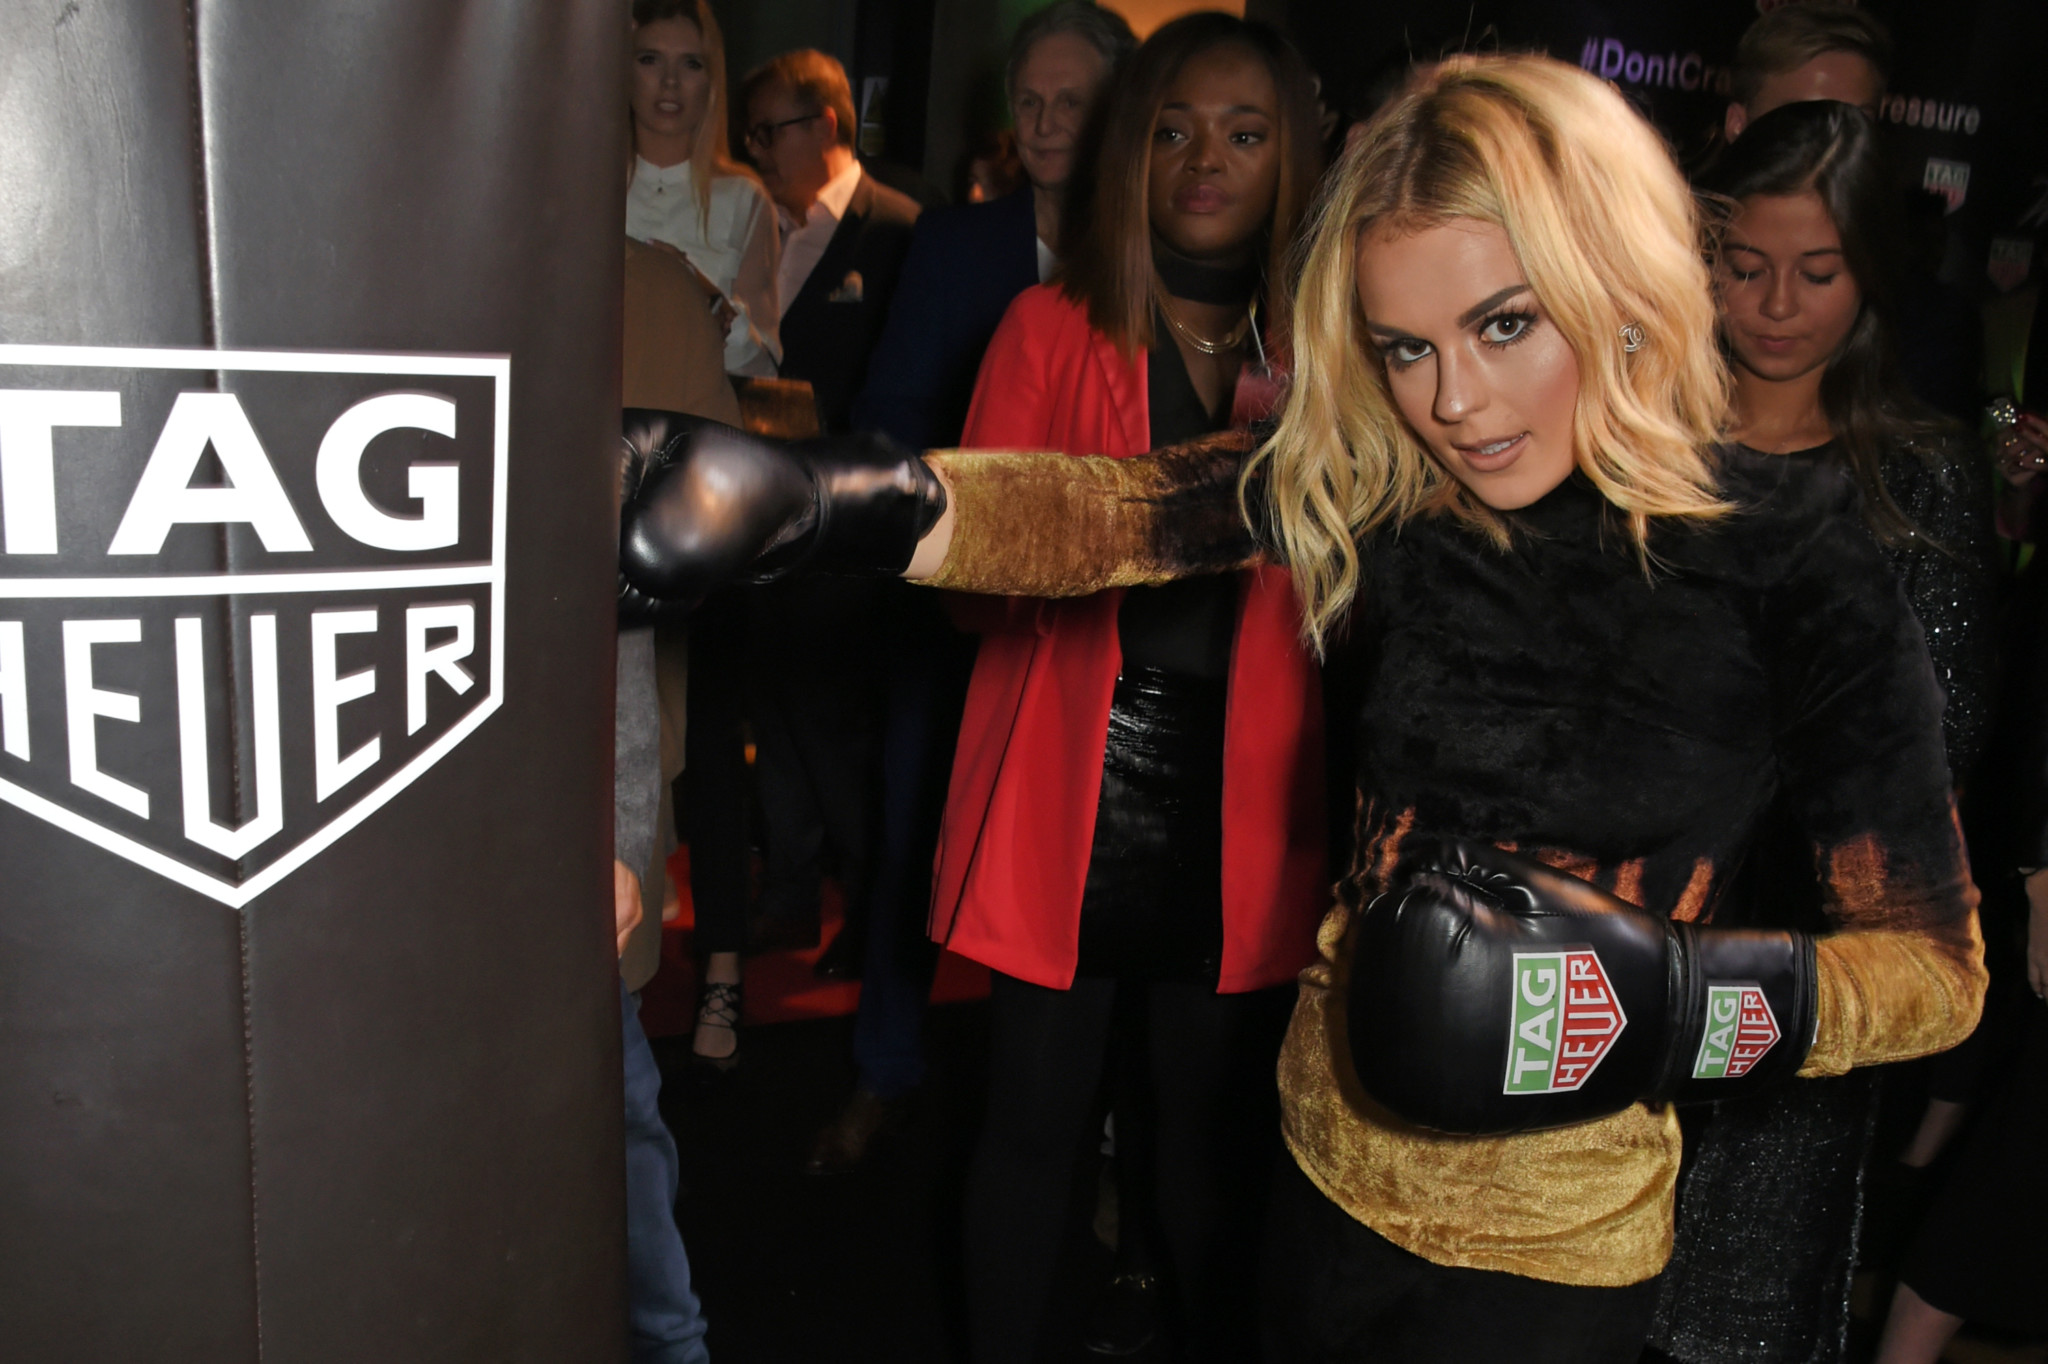 LONDON, ENGLAND - OCTOBER 10:  Tallia Storm attends the launch of the TAG Heuer Muhammad Ali Limited Edition Timepieces at BXR Gym on October 10, 2017 in London, England.  Pic Credit: Dave Benett